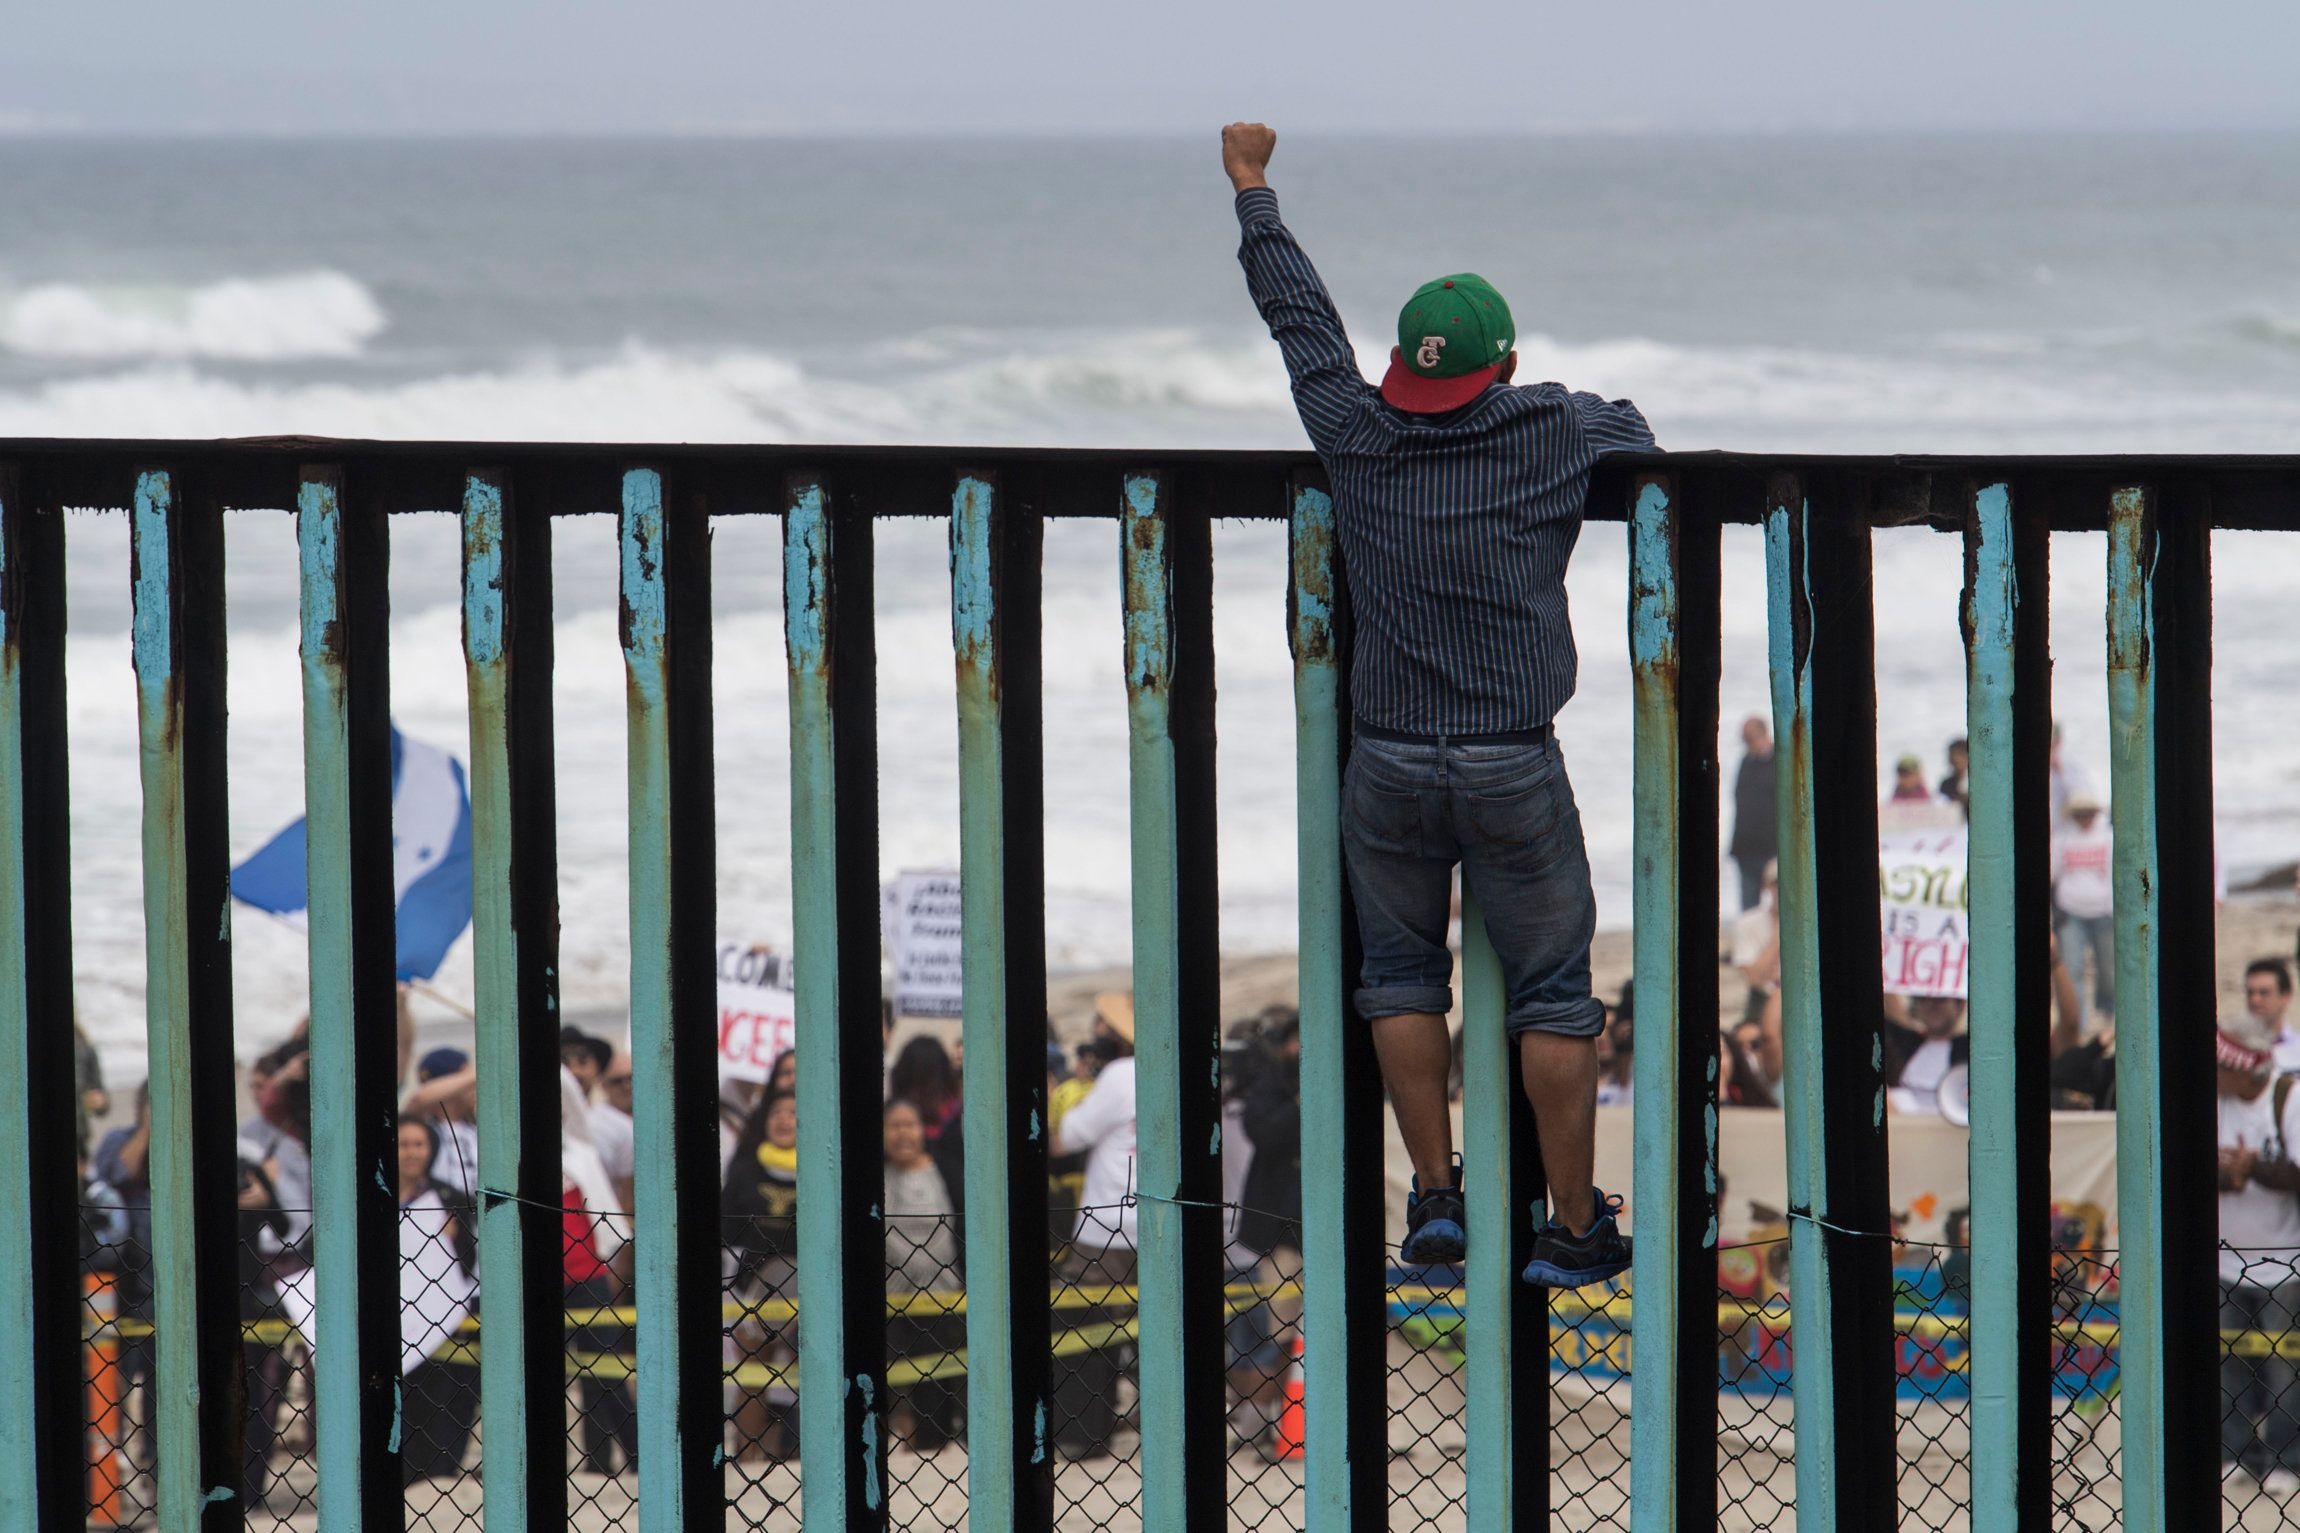 TIJUANA, MEXICO - APRIL 29: A man stands at the top of the border wall and yells to the march on the other side during the March Without Borders at Friendship Park on April 29, 2018 in Tijuana, Mexico. Hundreds of migrants from Central America traveled for about a month across Mexico to reach the United States border. On Sunday the group plans to go to the San Ysidro border crossing south of San Diego, California, where many of the migrants will seek asylum. (Photo by Carolyn Van Houten/The Washington Post via Getty Images)